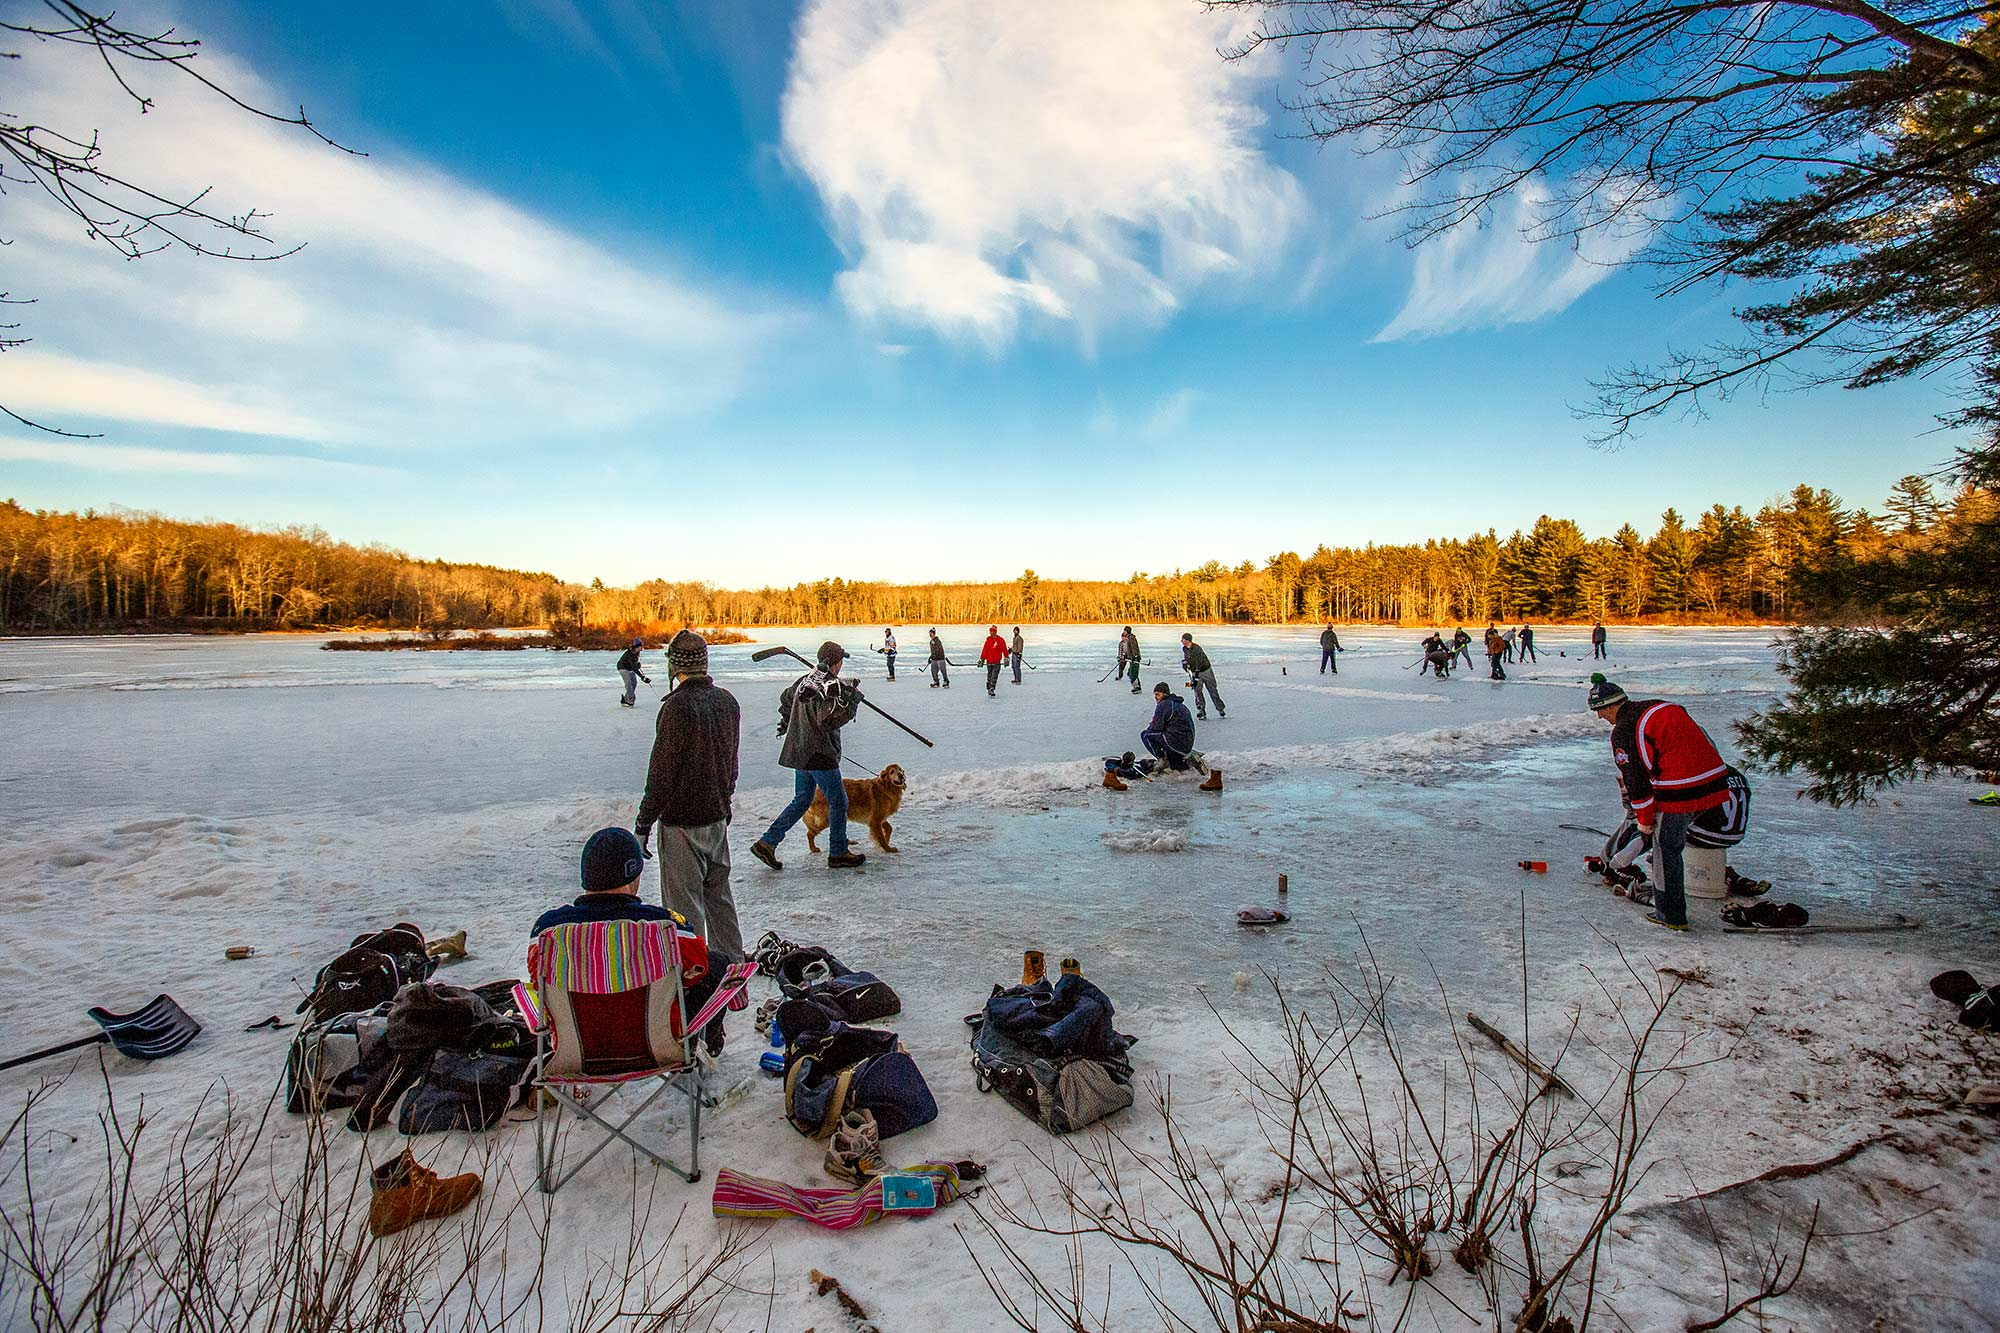 Pond Hockey, Great Pond, Simsbury, CT - 1/17/15